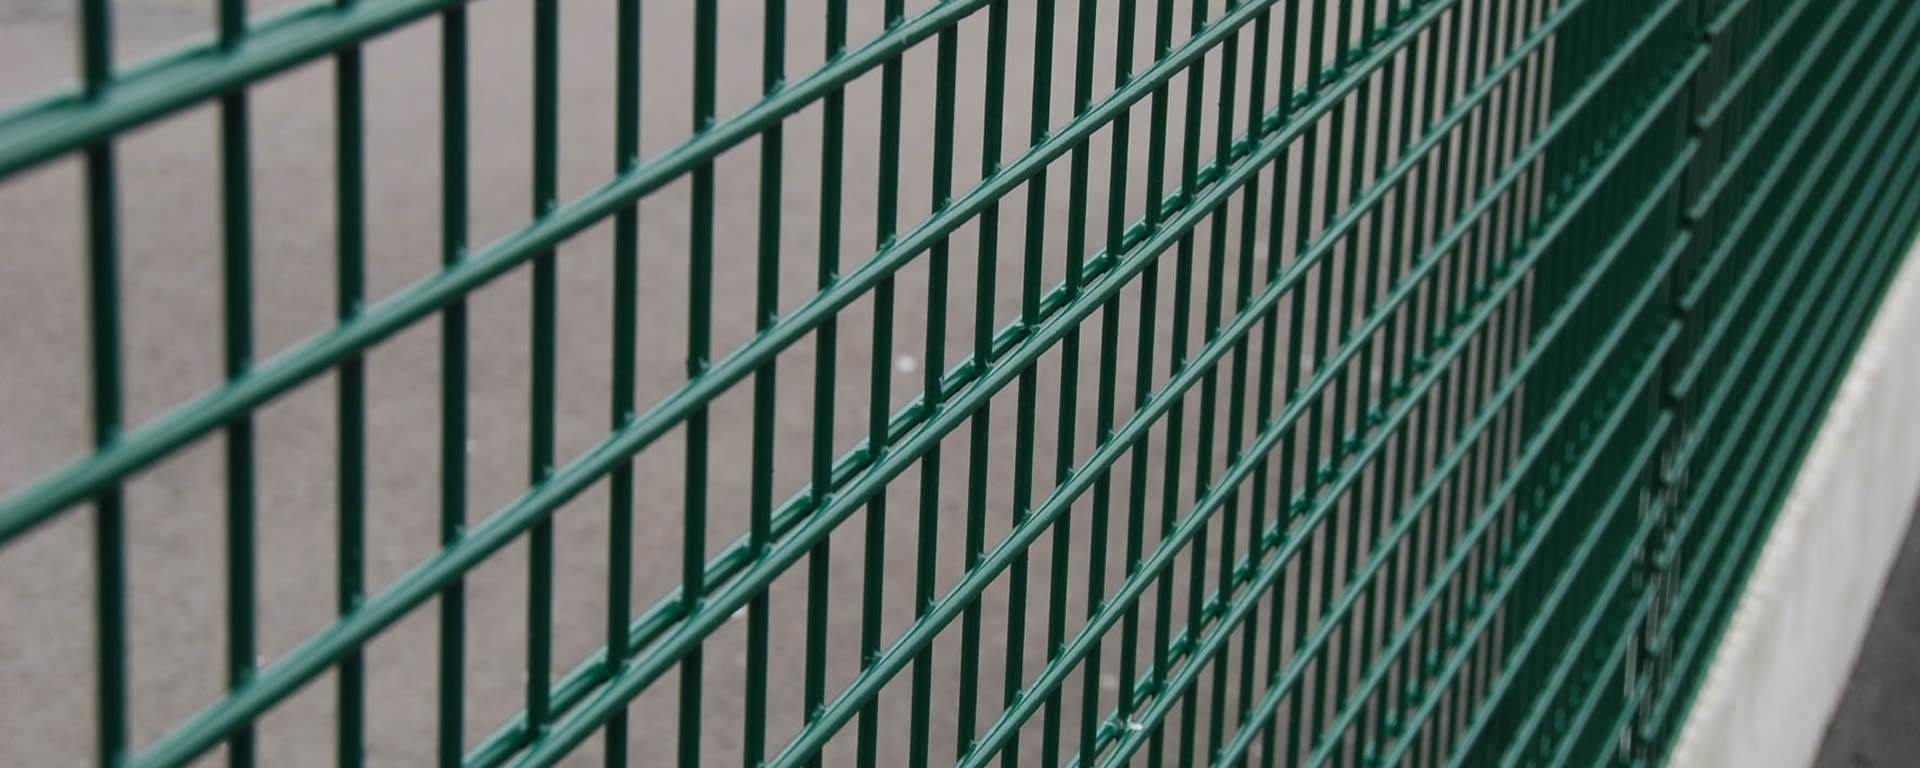 358 Mesh Fence High Security Welded Panel Fencing Barrier